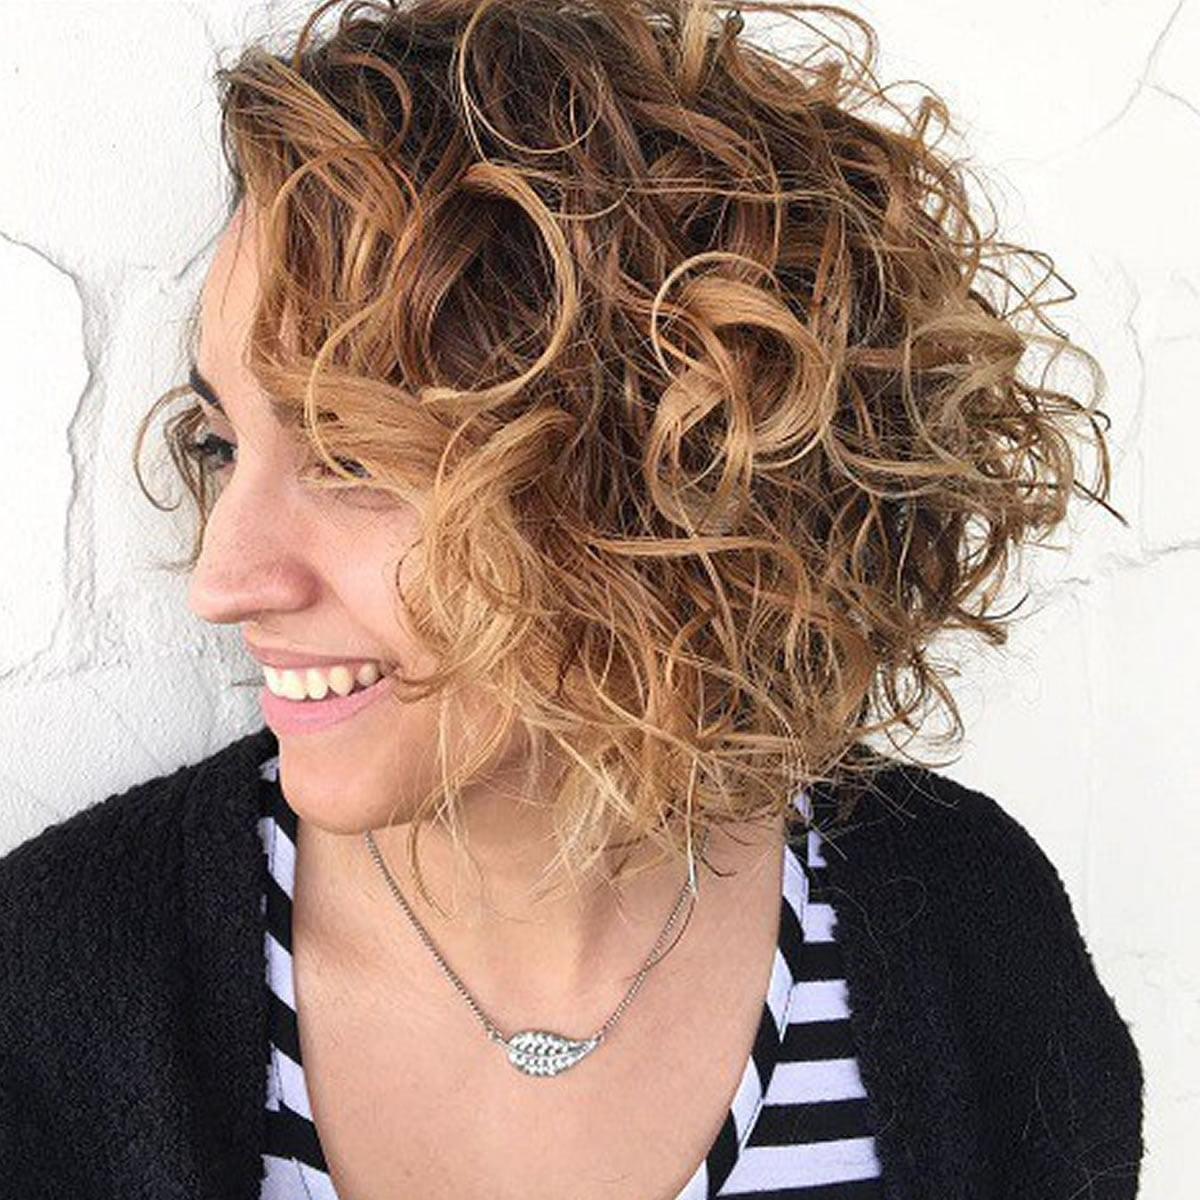 Curly Bob Hairstyles for Women Autumn & Winter Short Hair 2017 ...